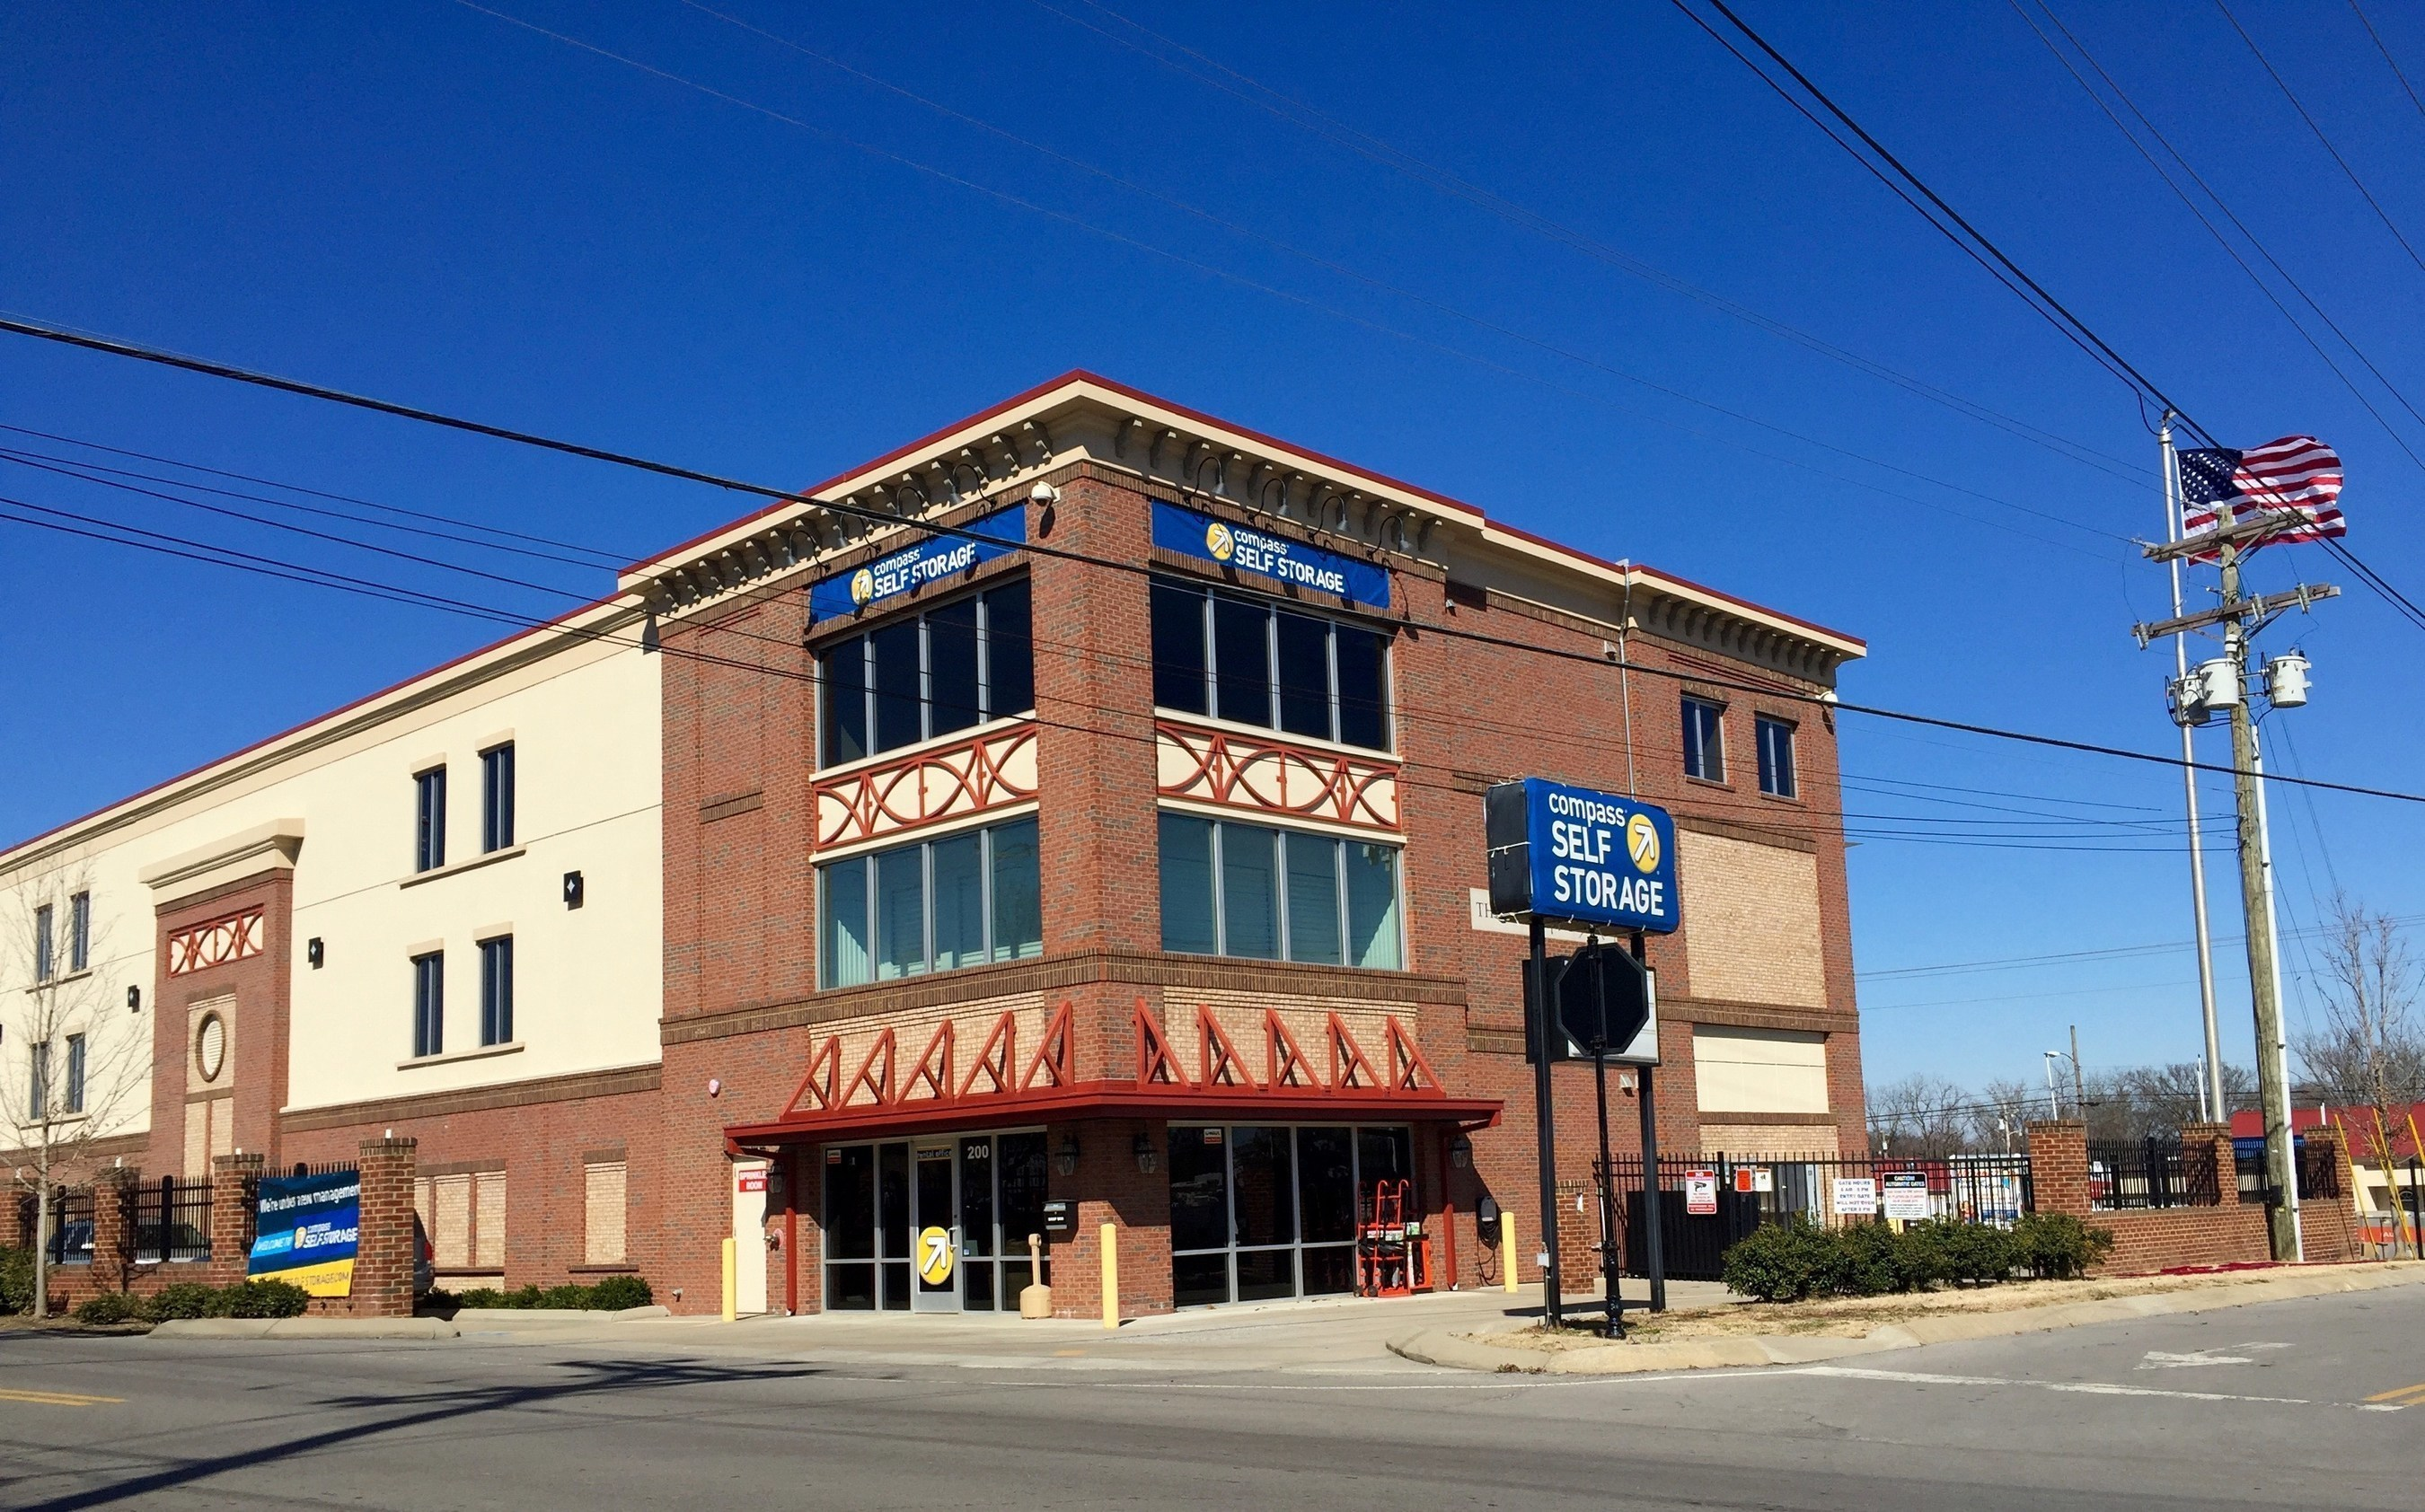 Compass Self Storage Enters the Nashville Market with Acquisition of Four Self Storage Centers.